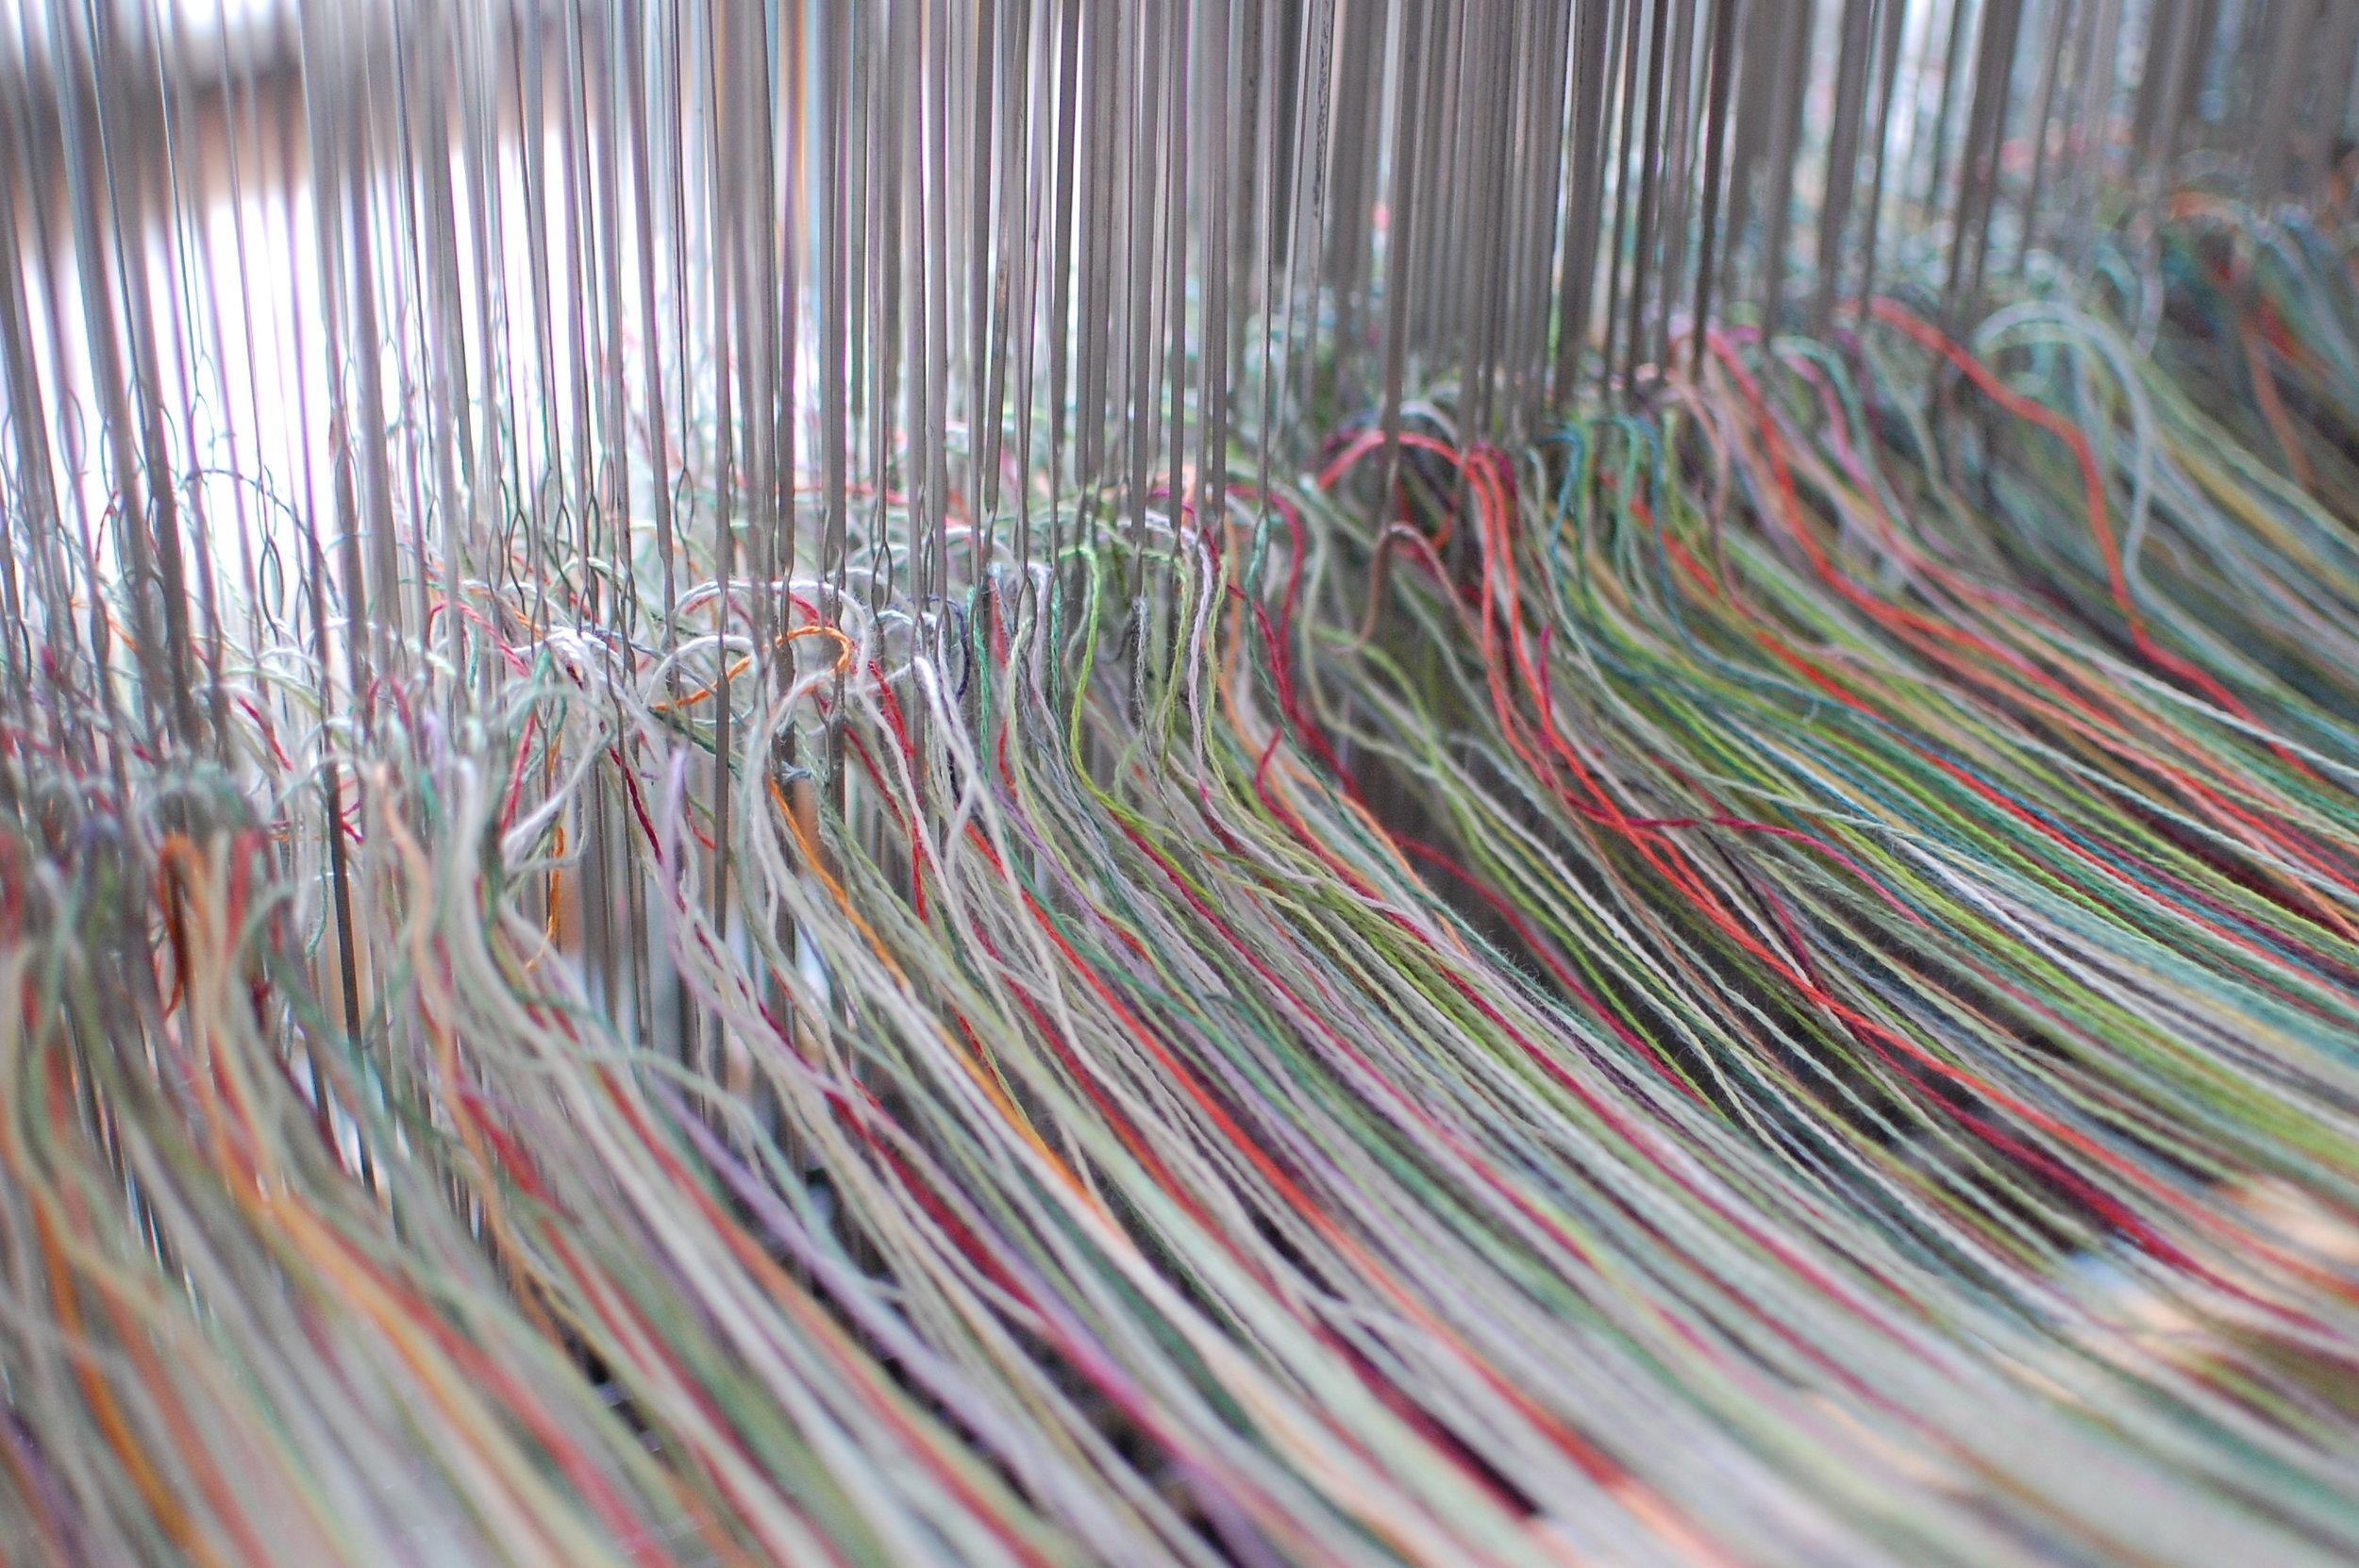 the warp - after threading each heddle